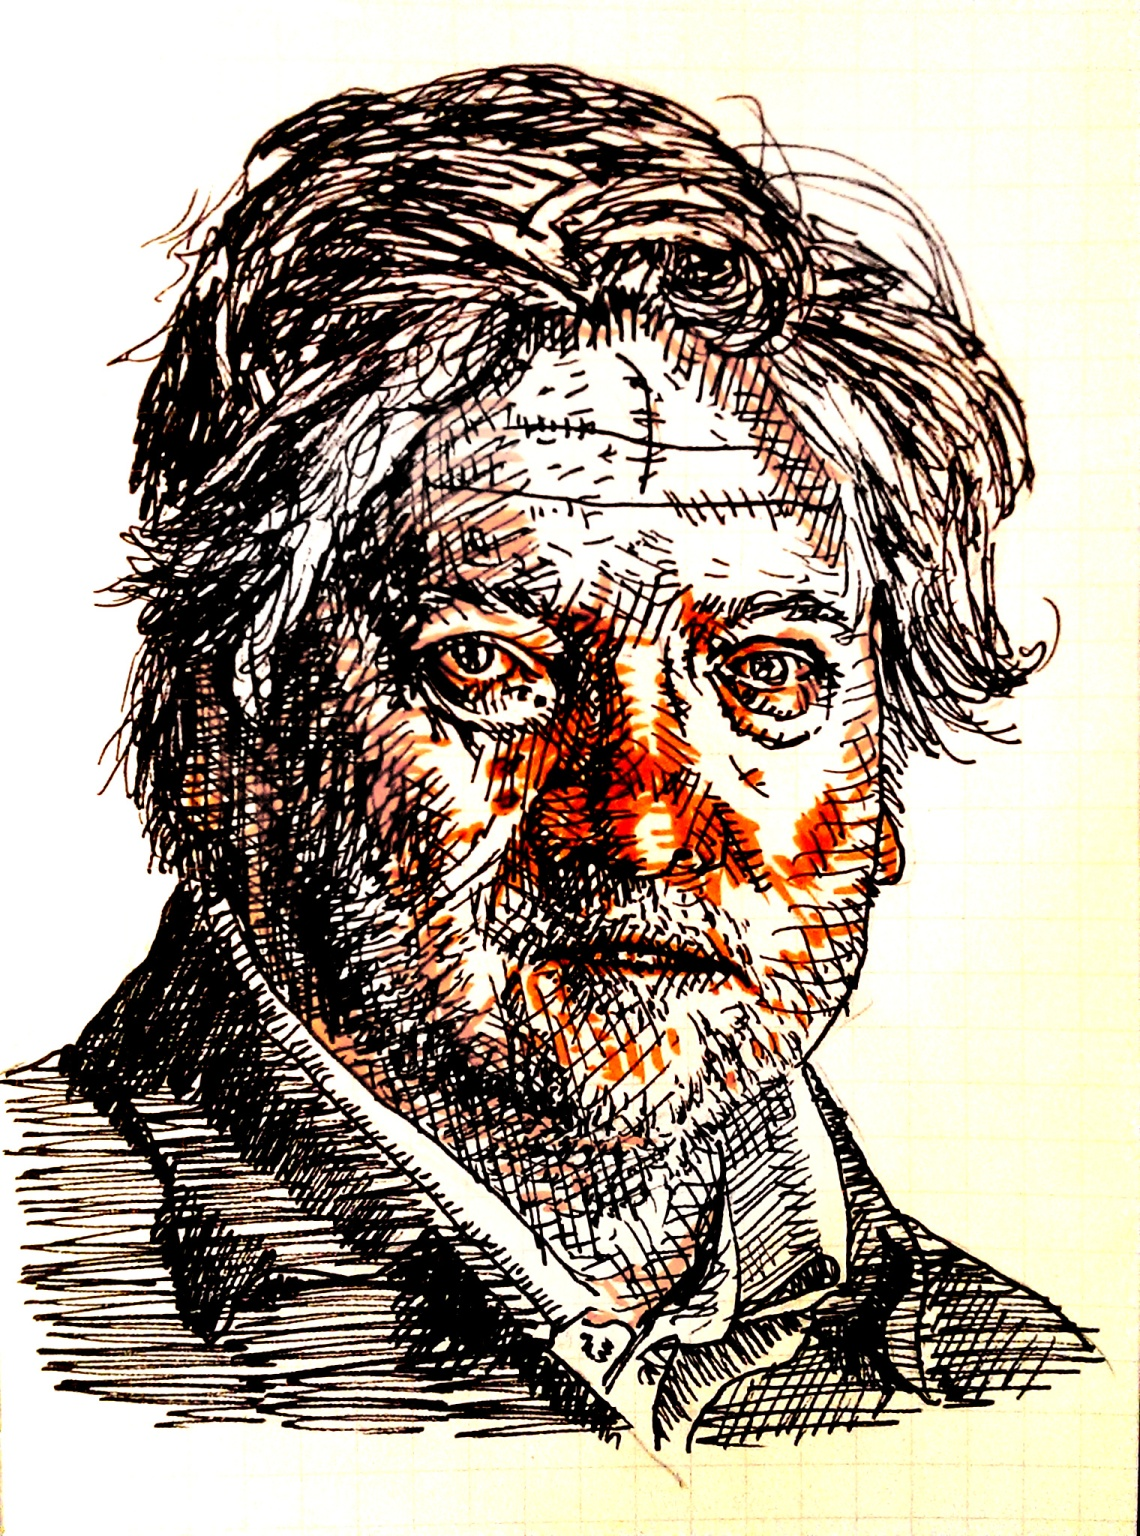 Steve Bannon illustration